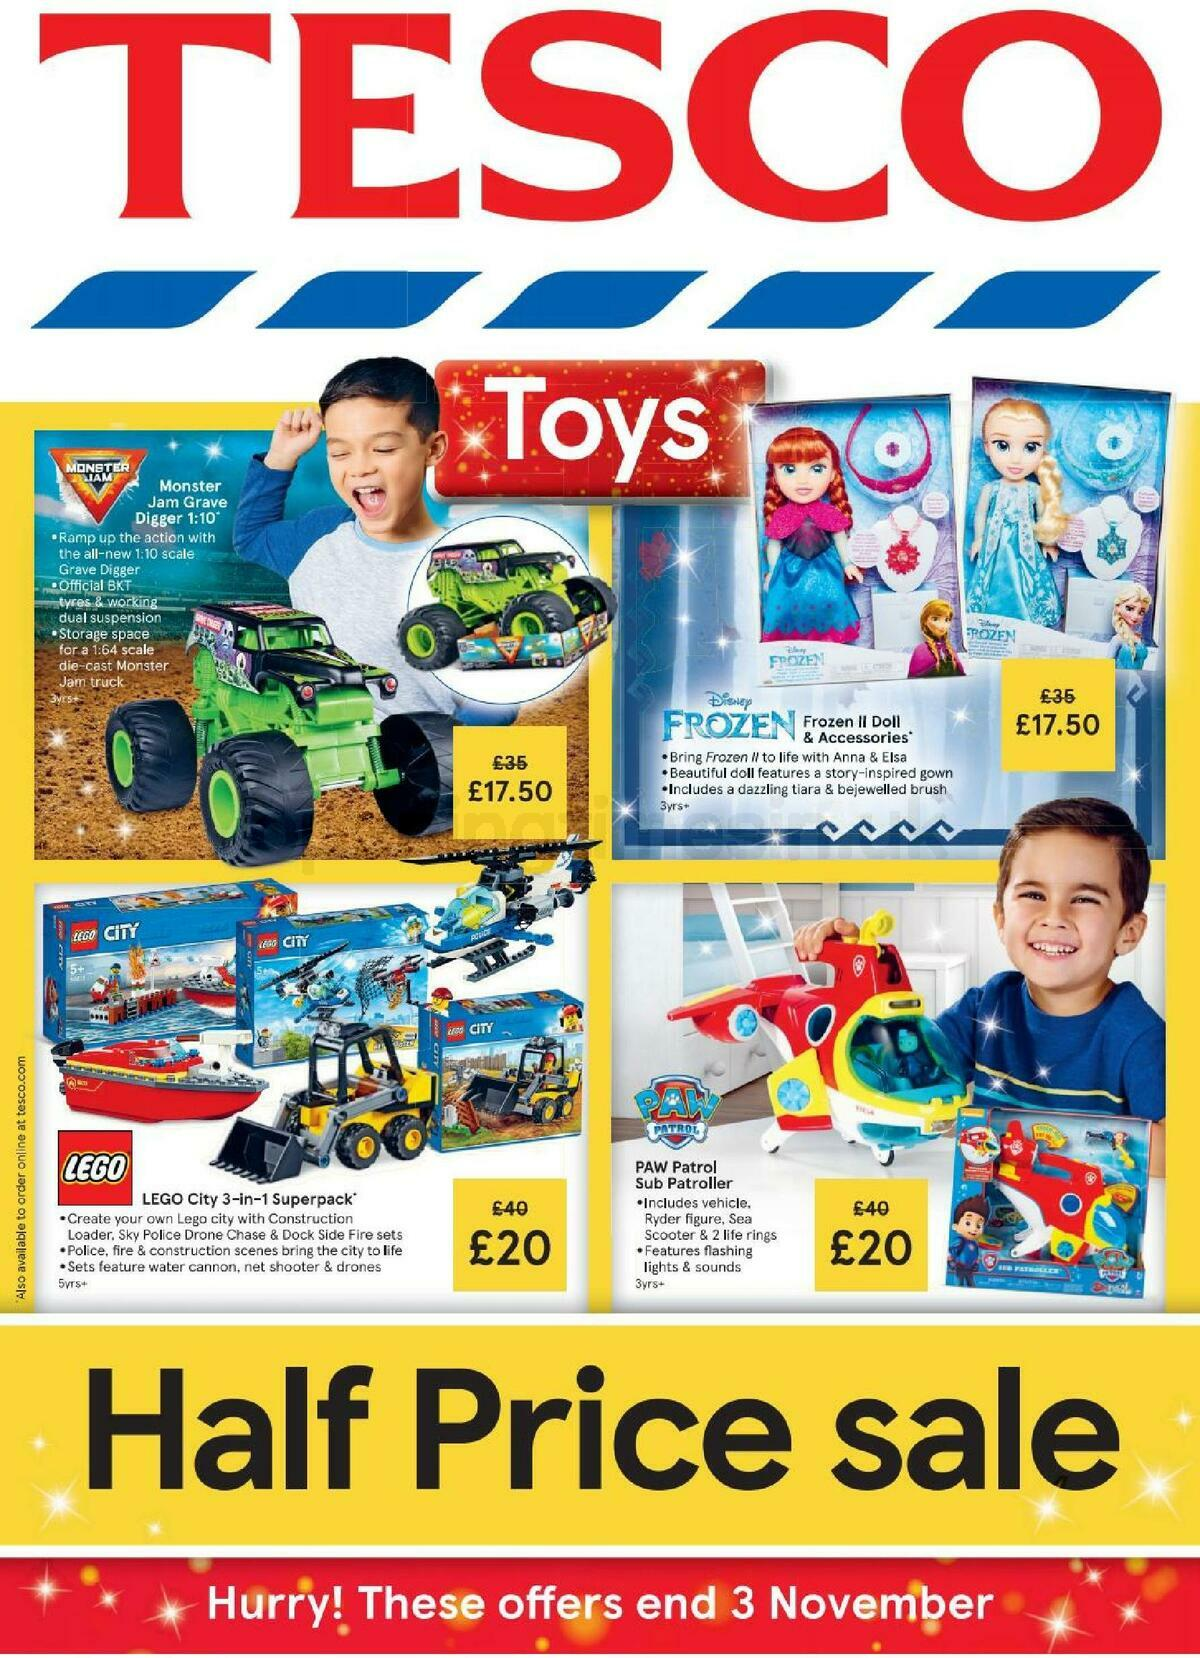 TESCO Tesco Half Price Toy Sale Leaflet Offers from October 2